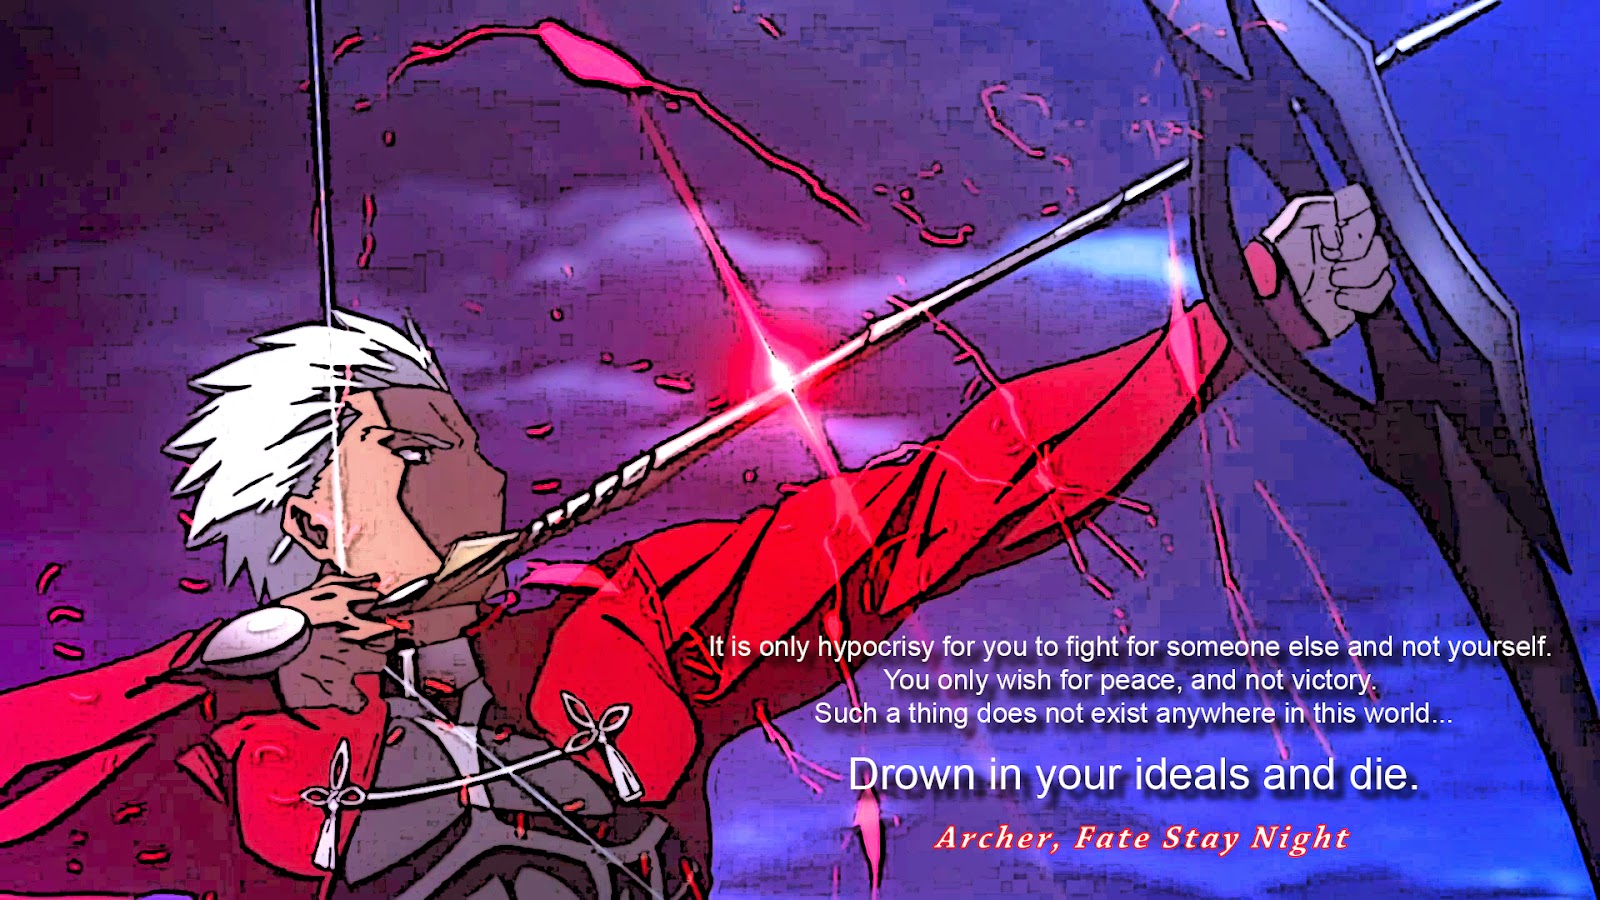 accepting fate essay Victor's willingness to blame his life's resolution on fate shows weakness in his character and an inability to take responsibility for his personal volition and judgement in contrast to destiny's original provocation of victor to pursue creation and life, here, it serves as an excuse for failure and his acceptance of it.